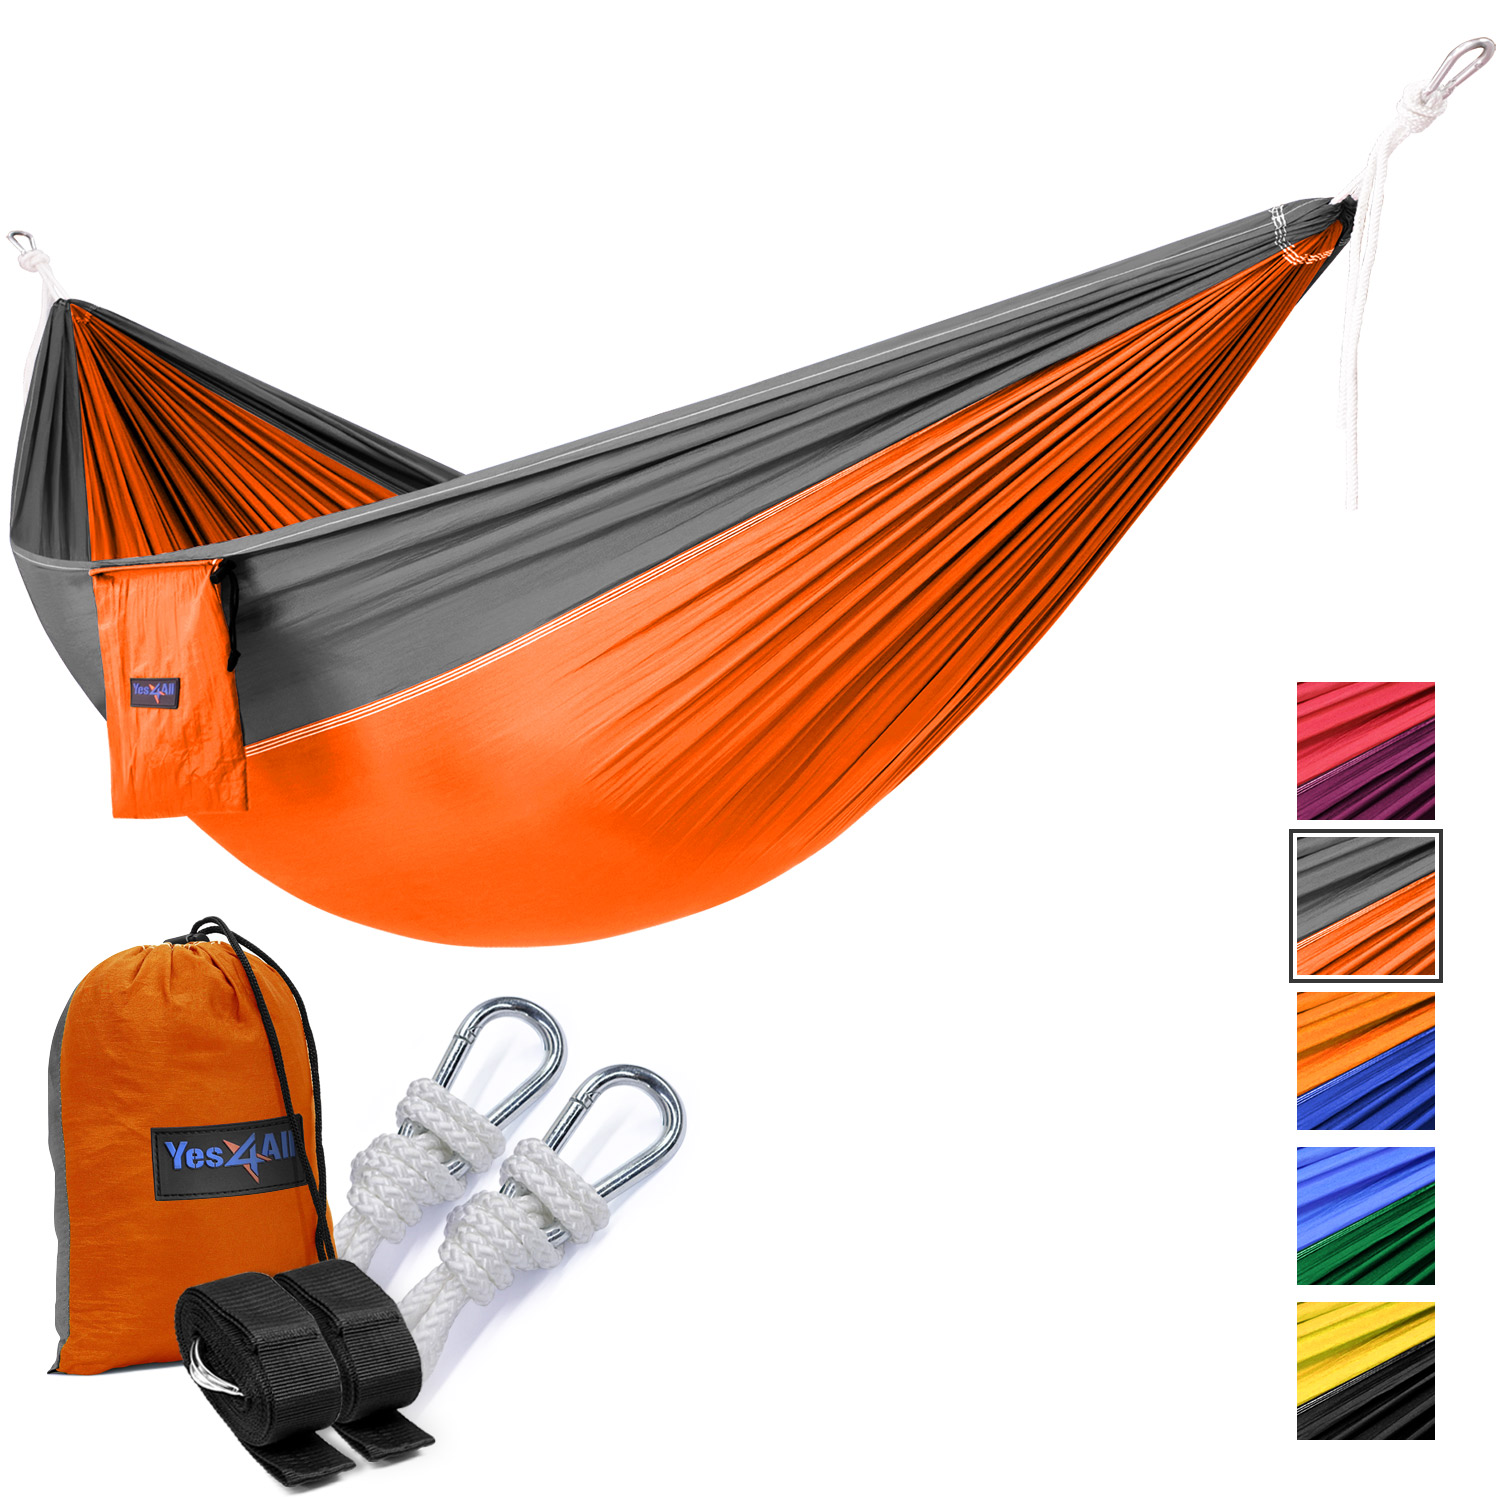 Yes4All Single Lightweight Camping Hammock with Strap & Carry Bag